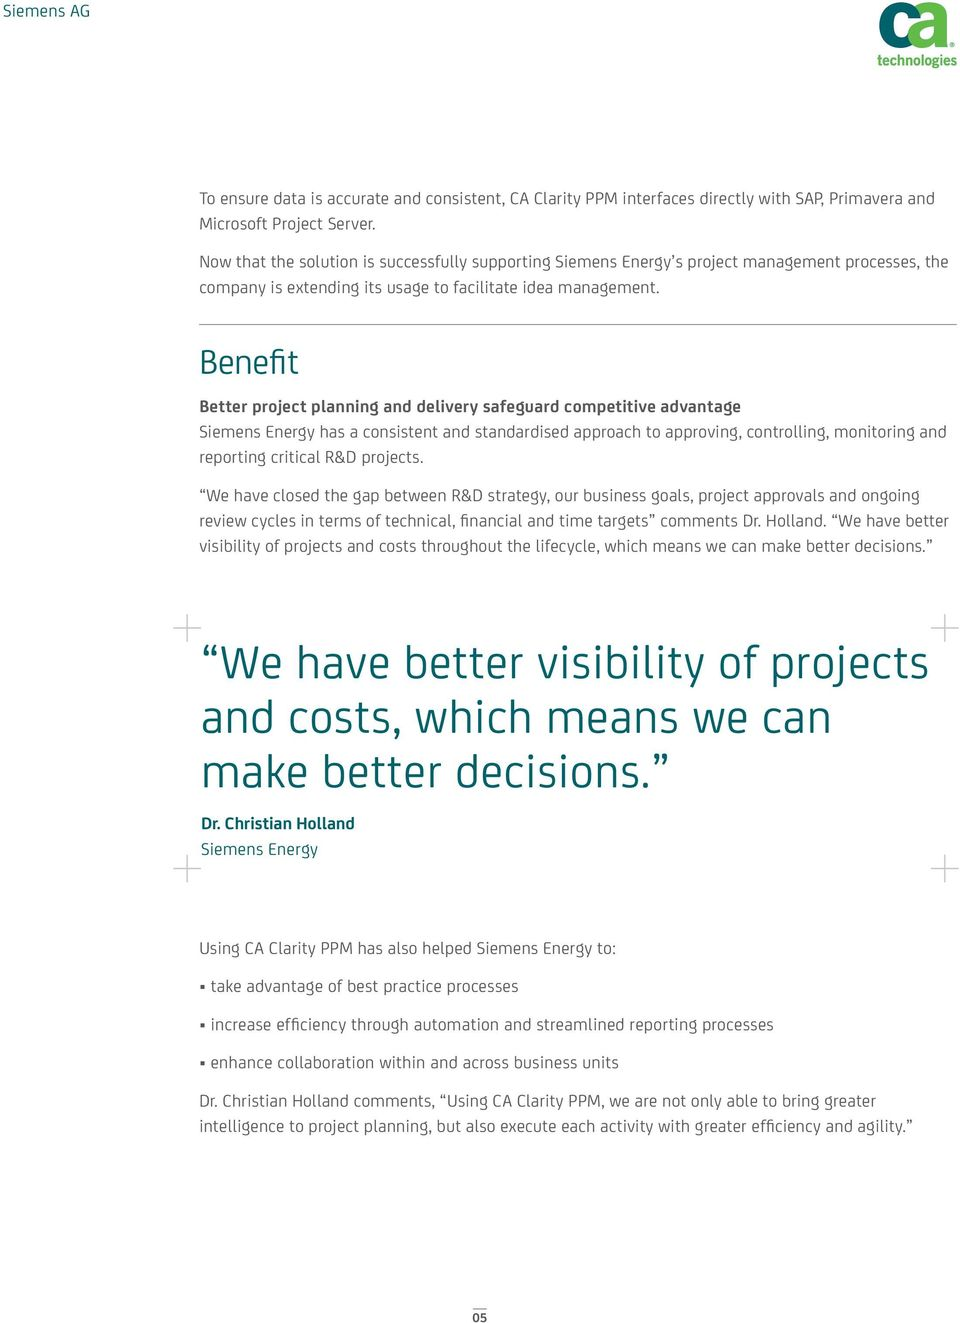 Benefit Better project planning and delivery safeguard competitive advantage Siemens Energy has a consistent and standardised approach to approving, controlling, monitoring and reporting critical R&D